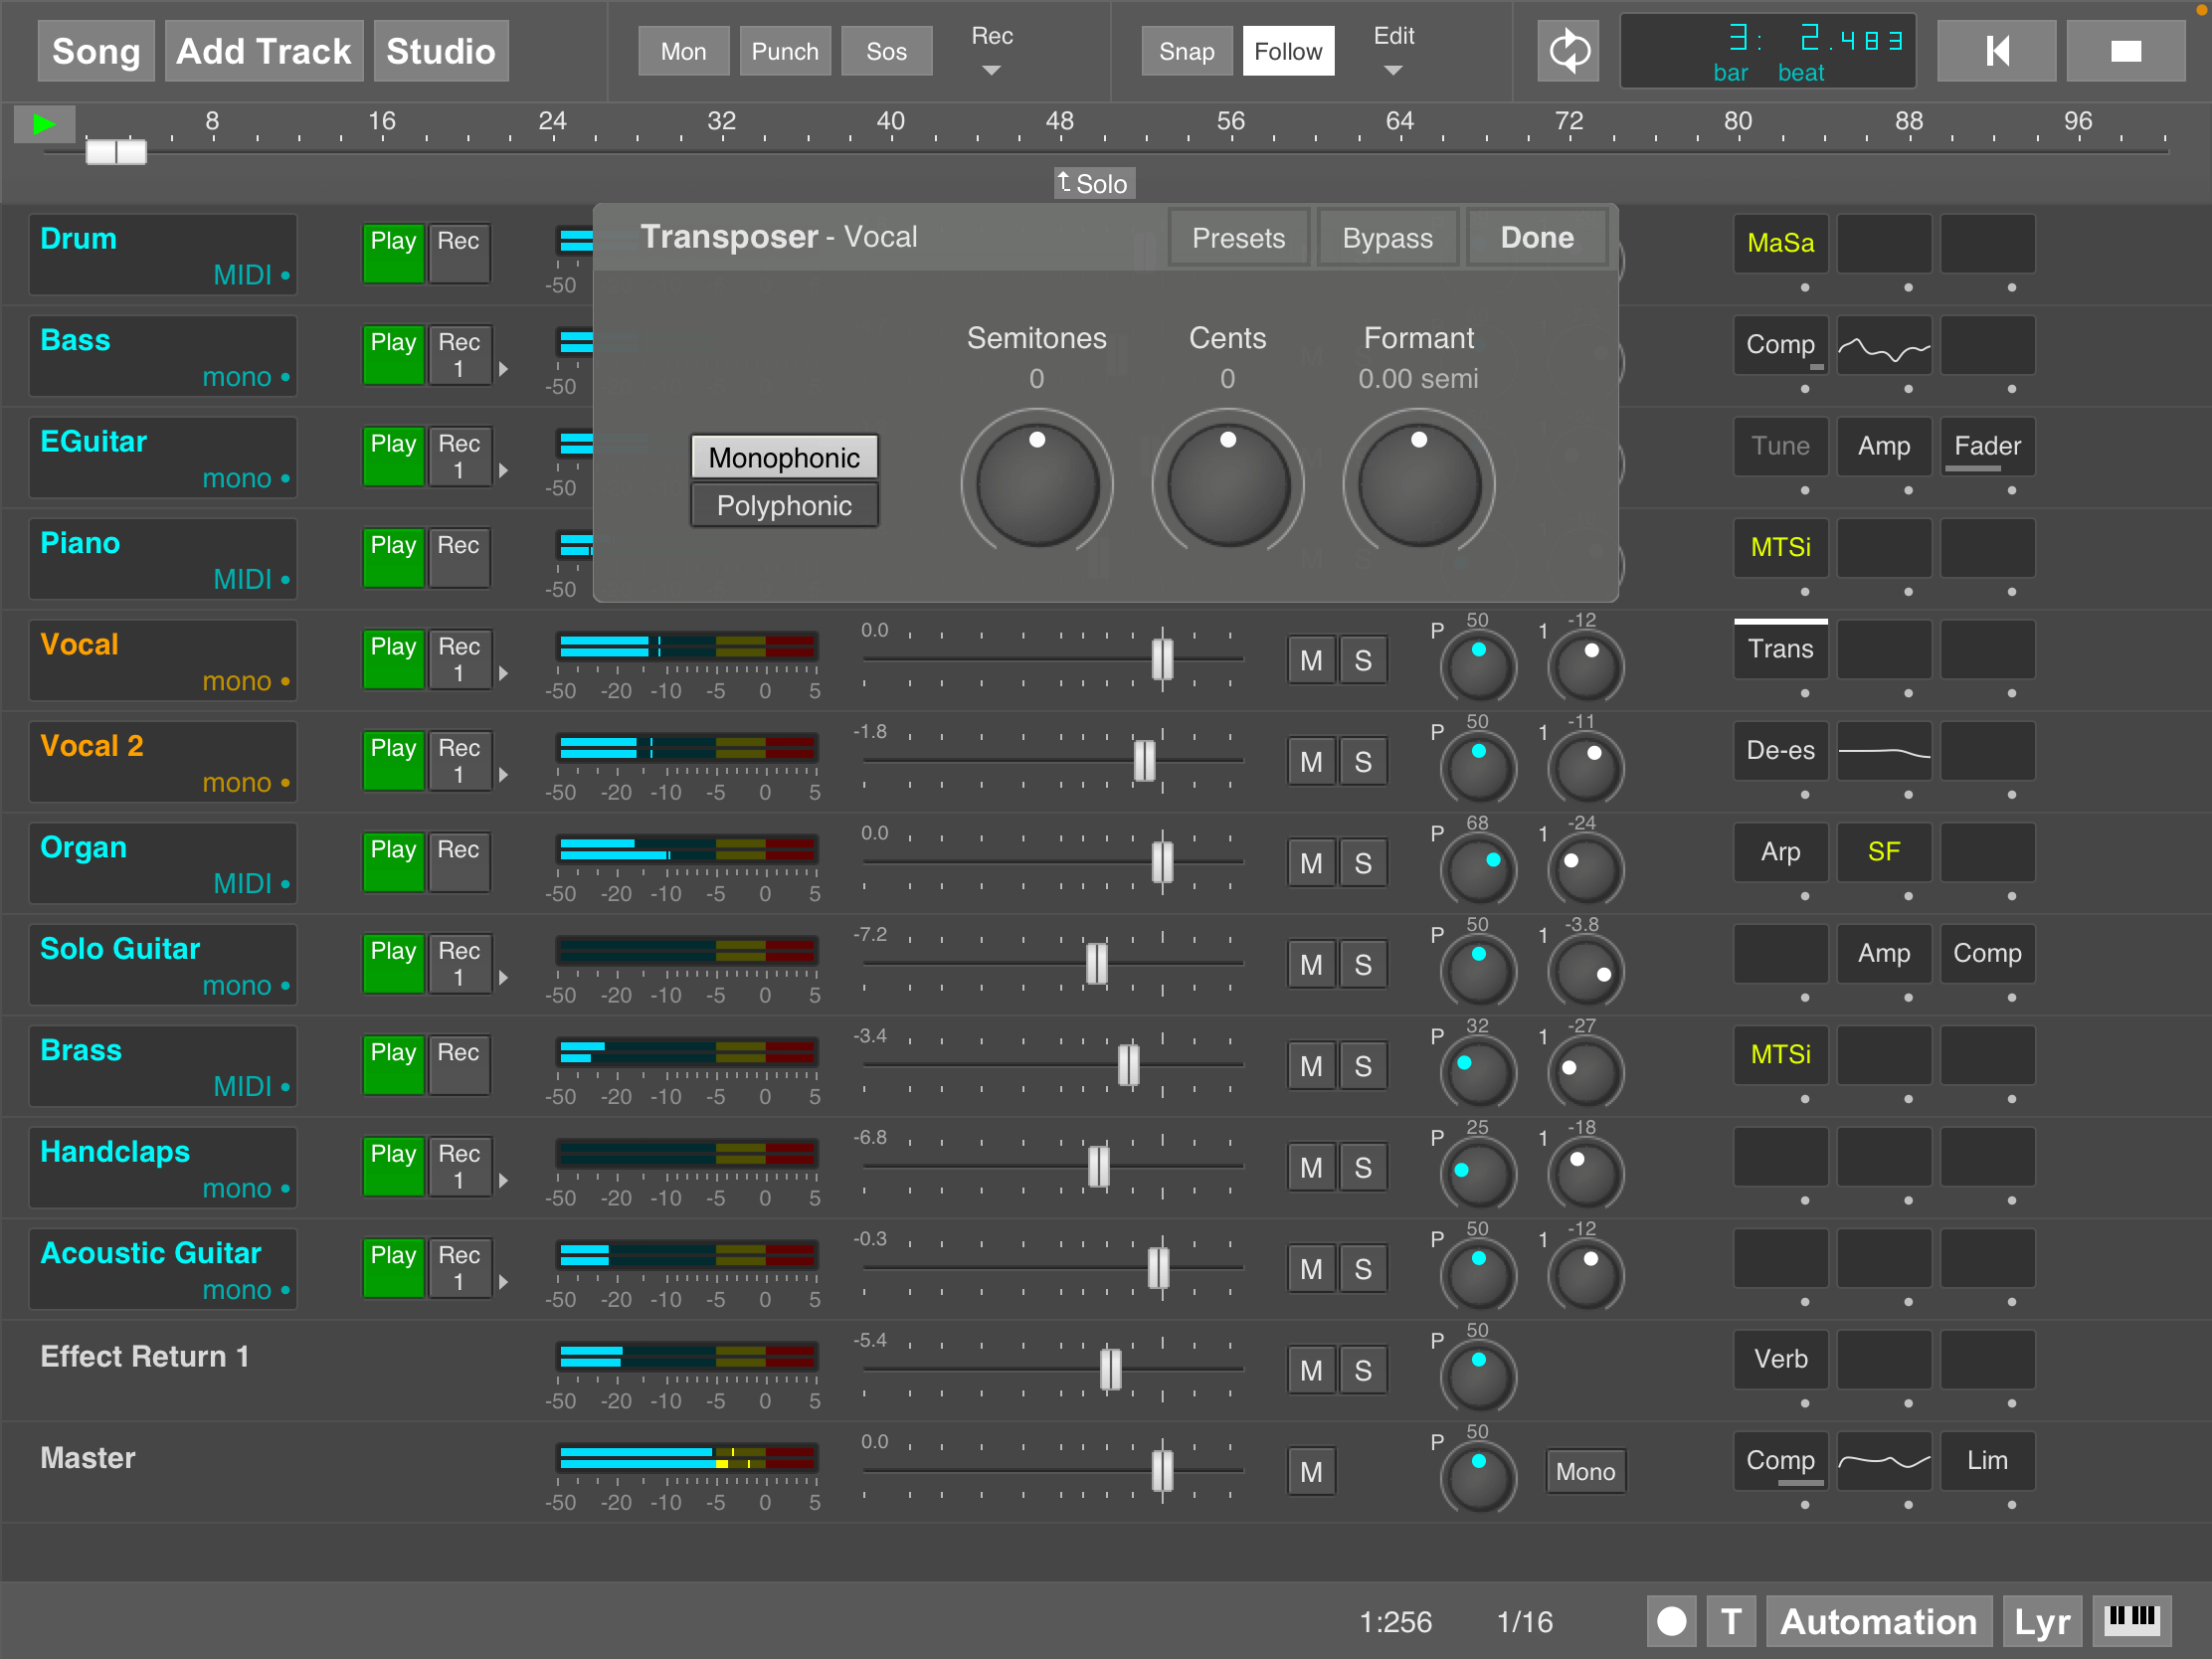 MultitrackStudio for iPad - Transposer effect